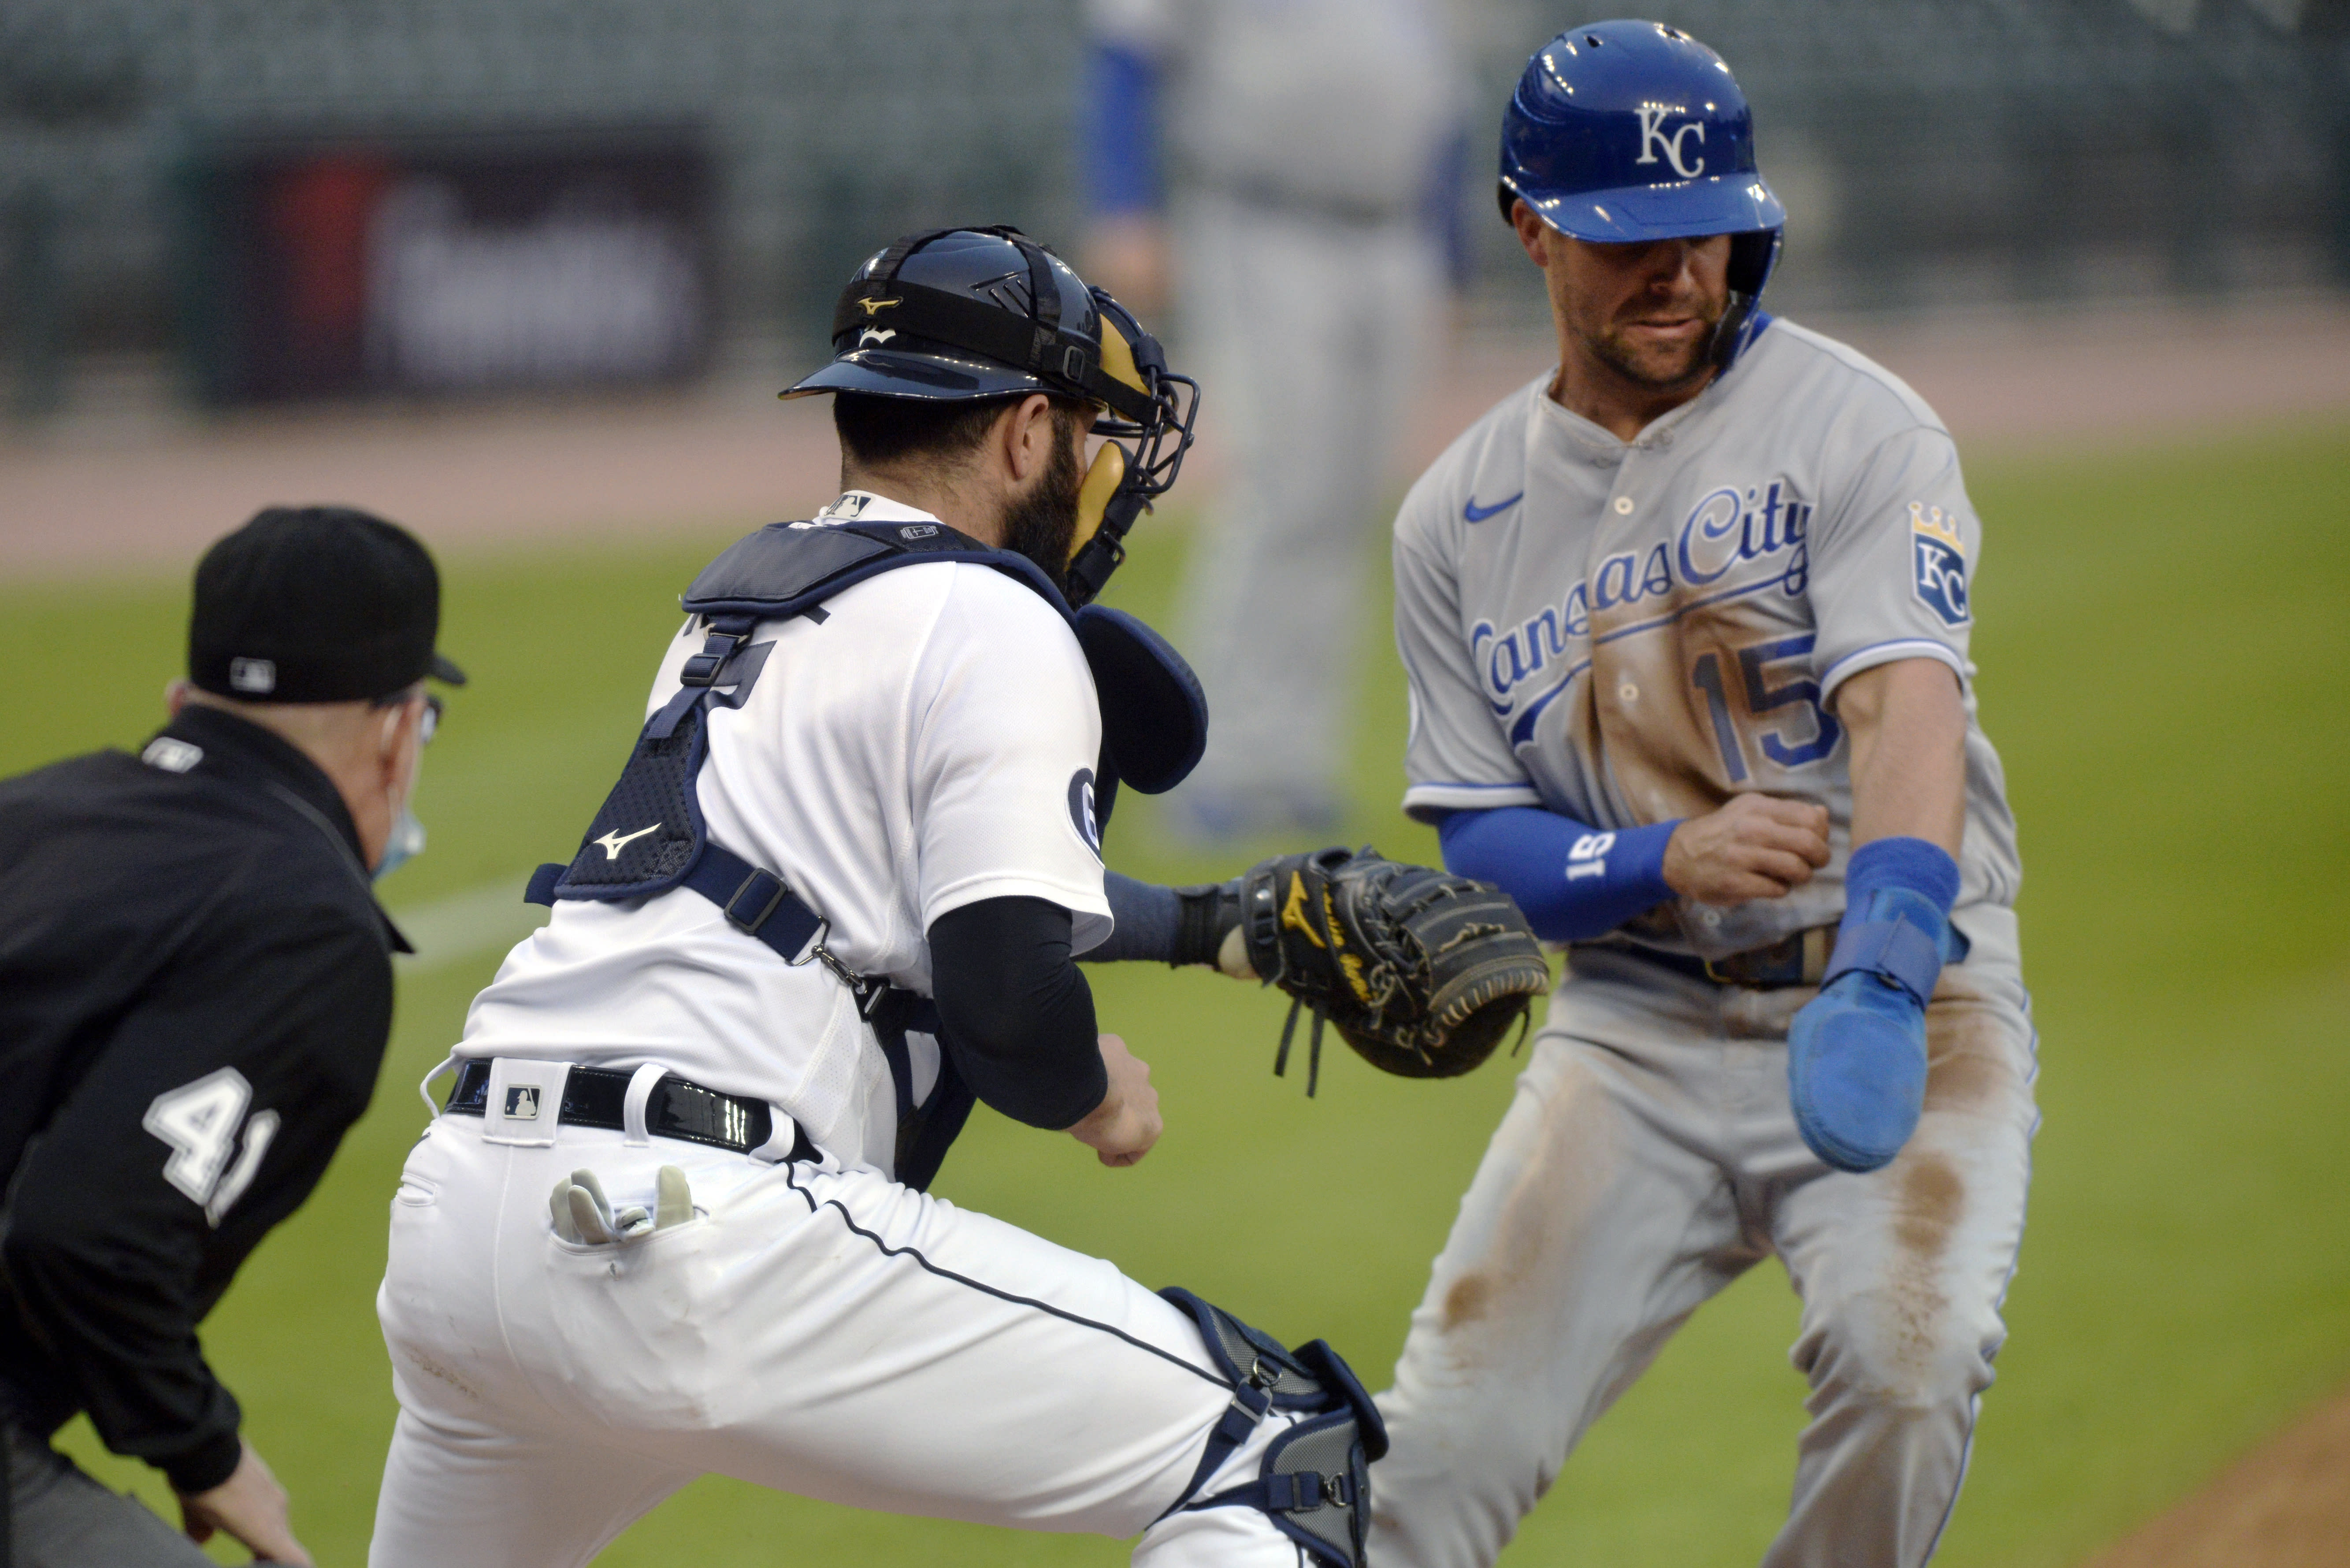 Detroit Tigers catcher Austin Romine tags out Kansas City Royals' Whit Merrifield during the first inning of a baseball game Tuesday, Sept. 15, 2020, in Detroit. (AP Photo/Jose Juarez)